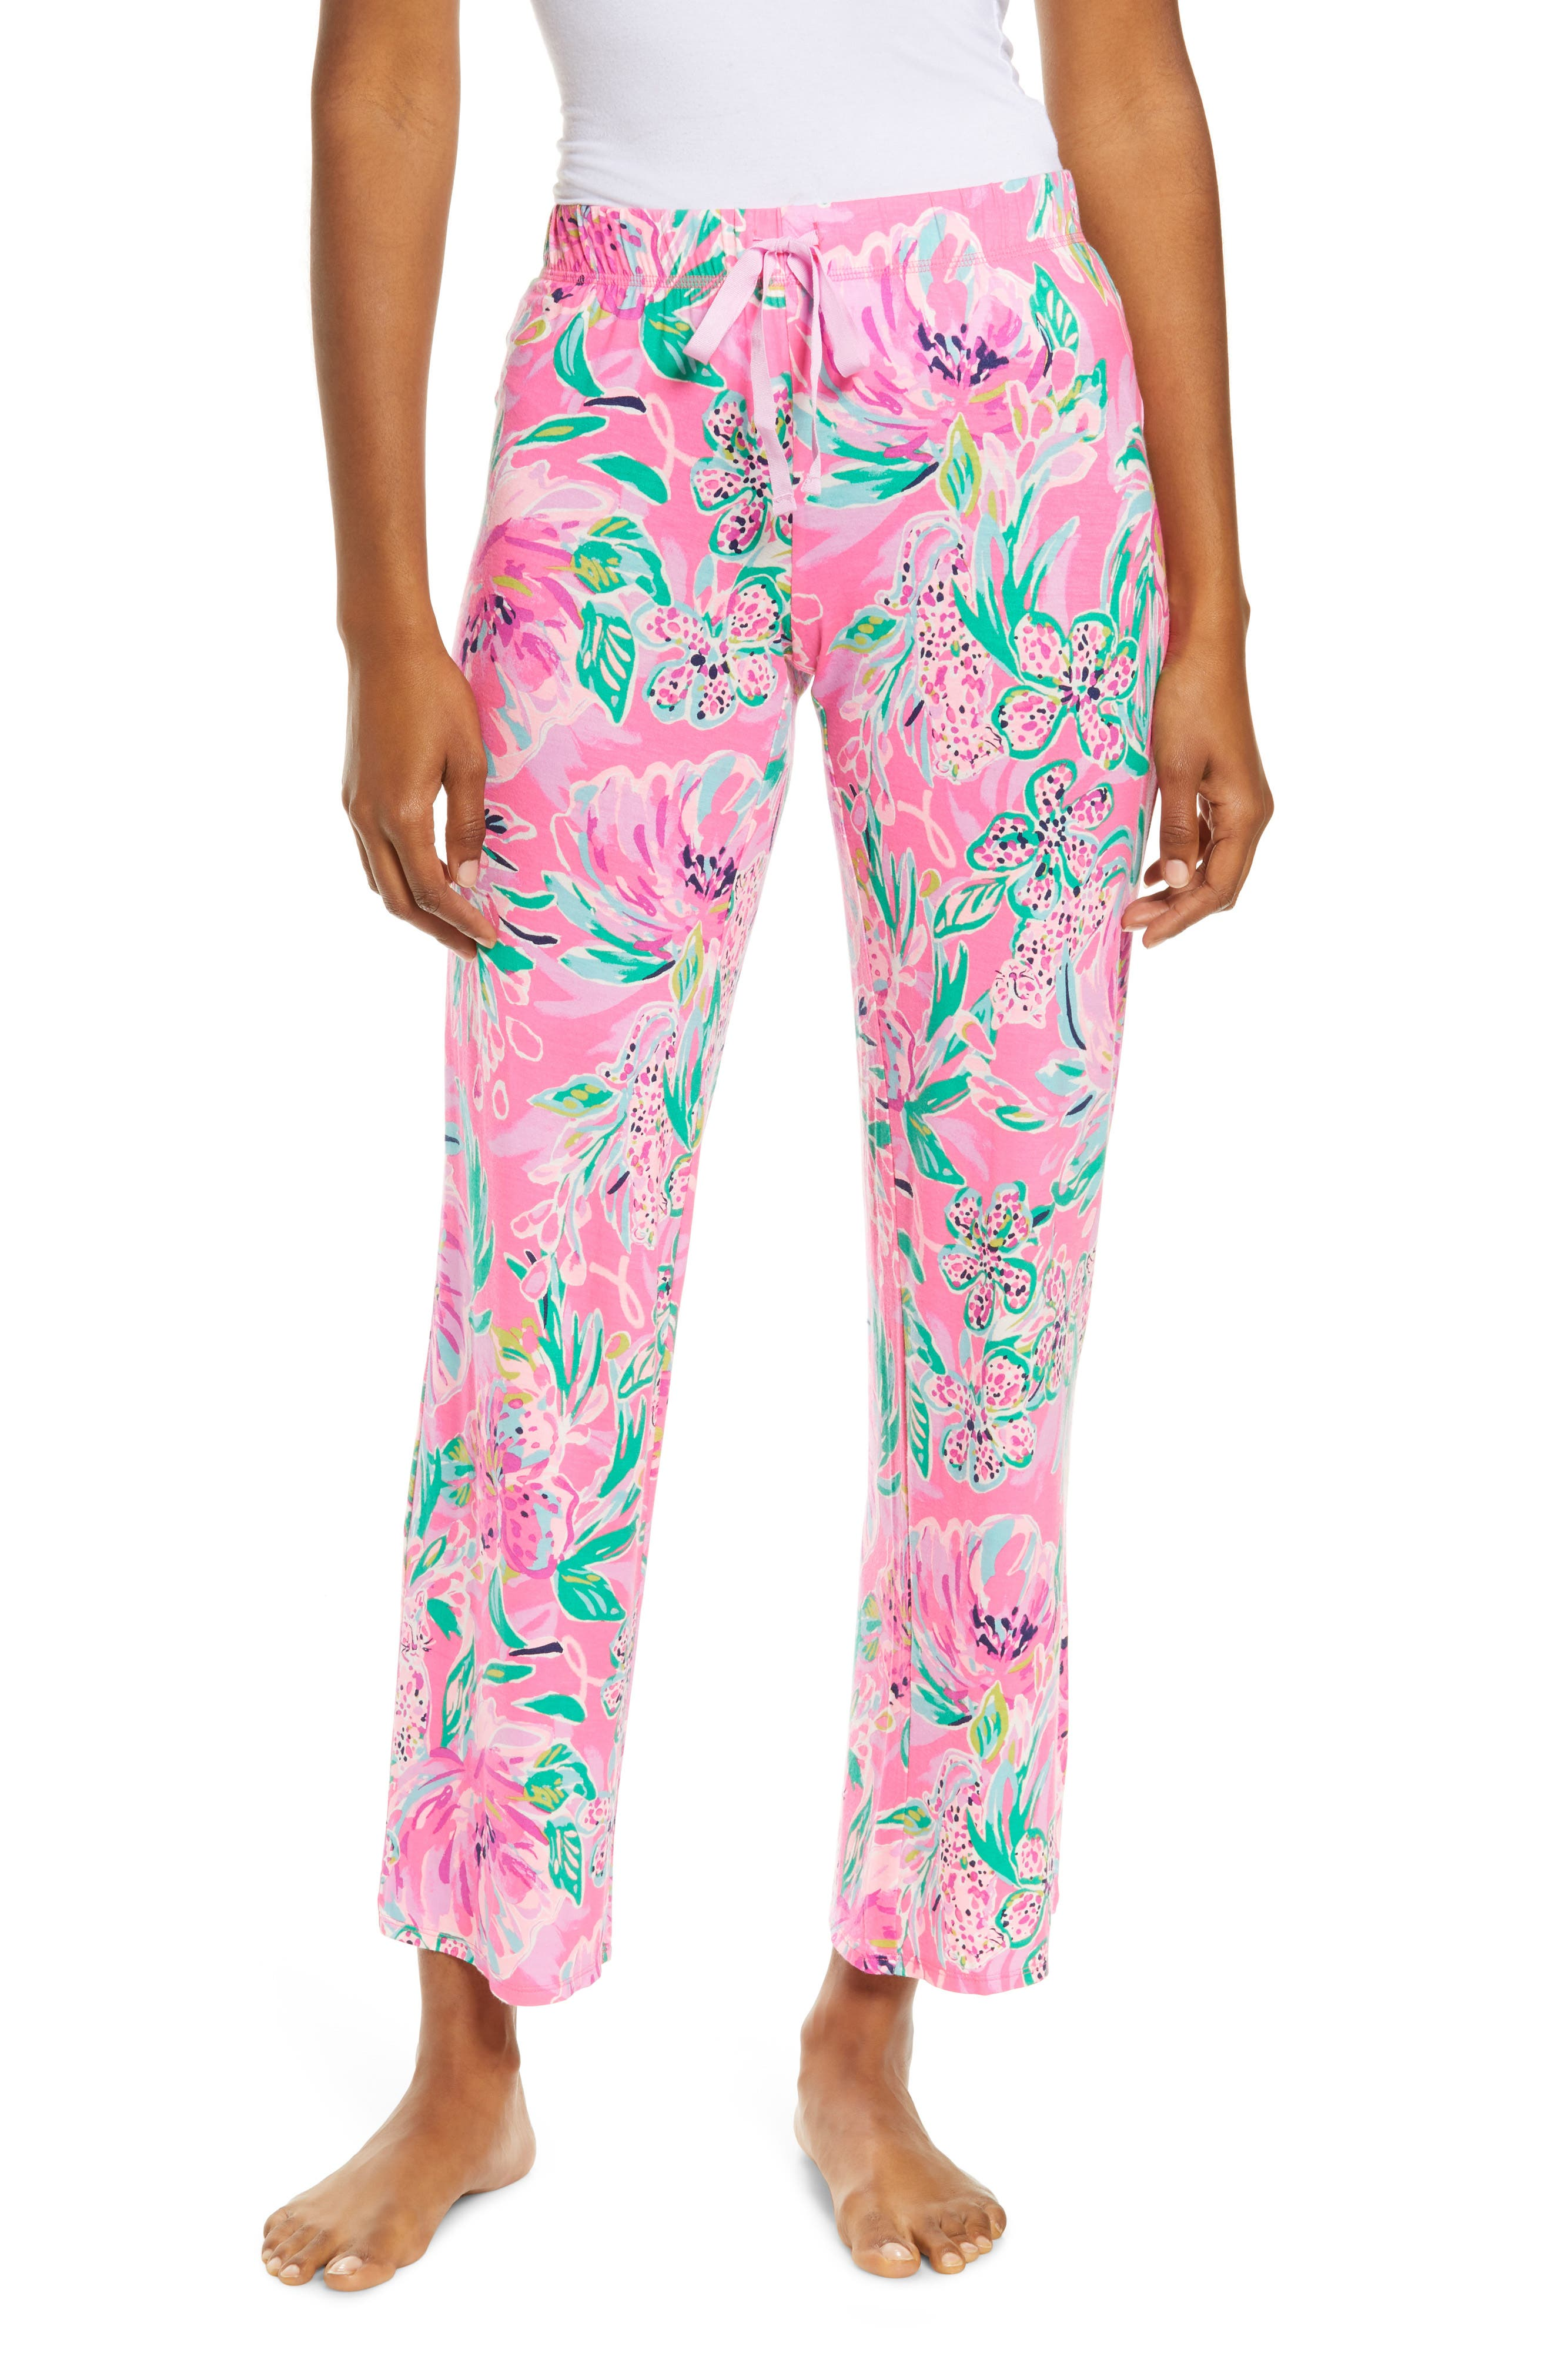 You\\\'ll find yourself dreaming of flamingos and frothy drinks around the pool when you wear these happy-print knit pajama pants to bed. Style Name: Lilly Pulitzer Floral Print Sleep Pants. Style Number: 6127622. Available in stores.